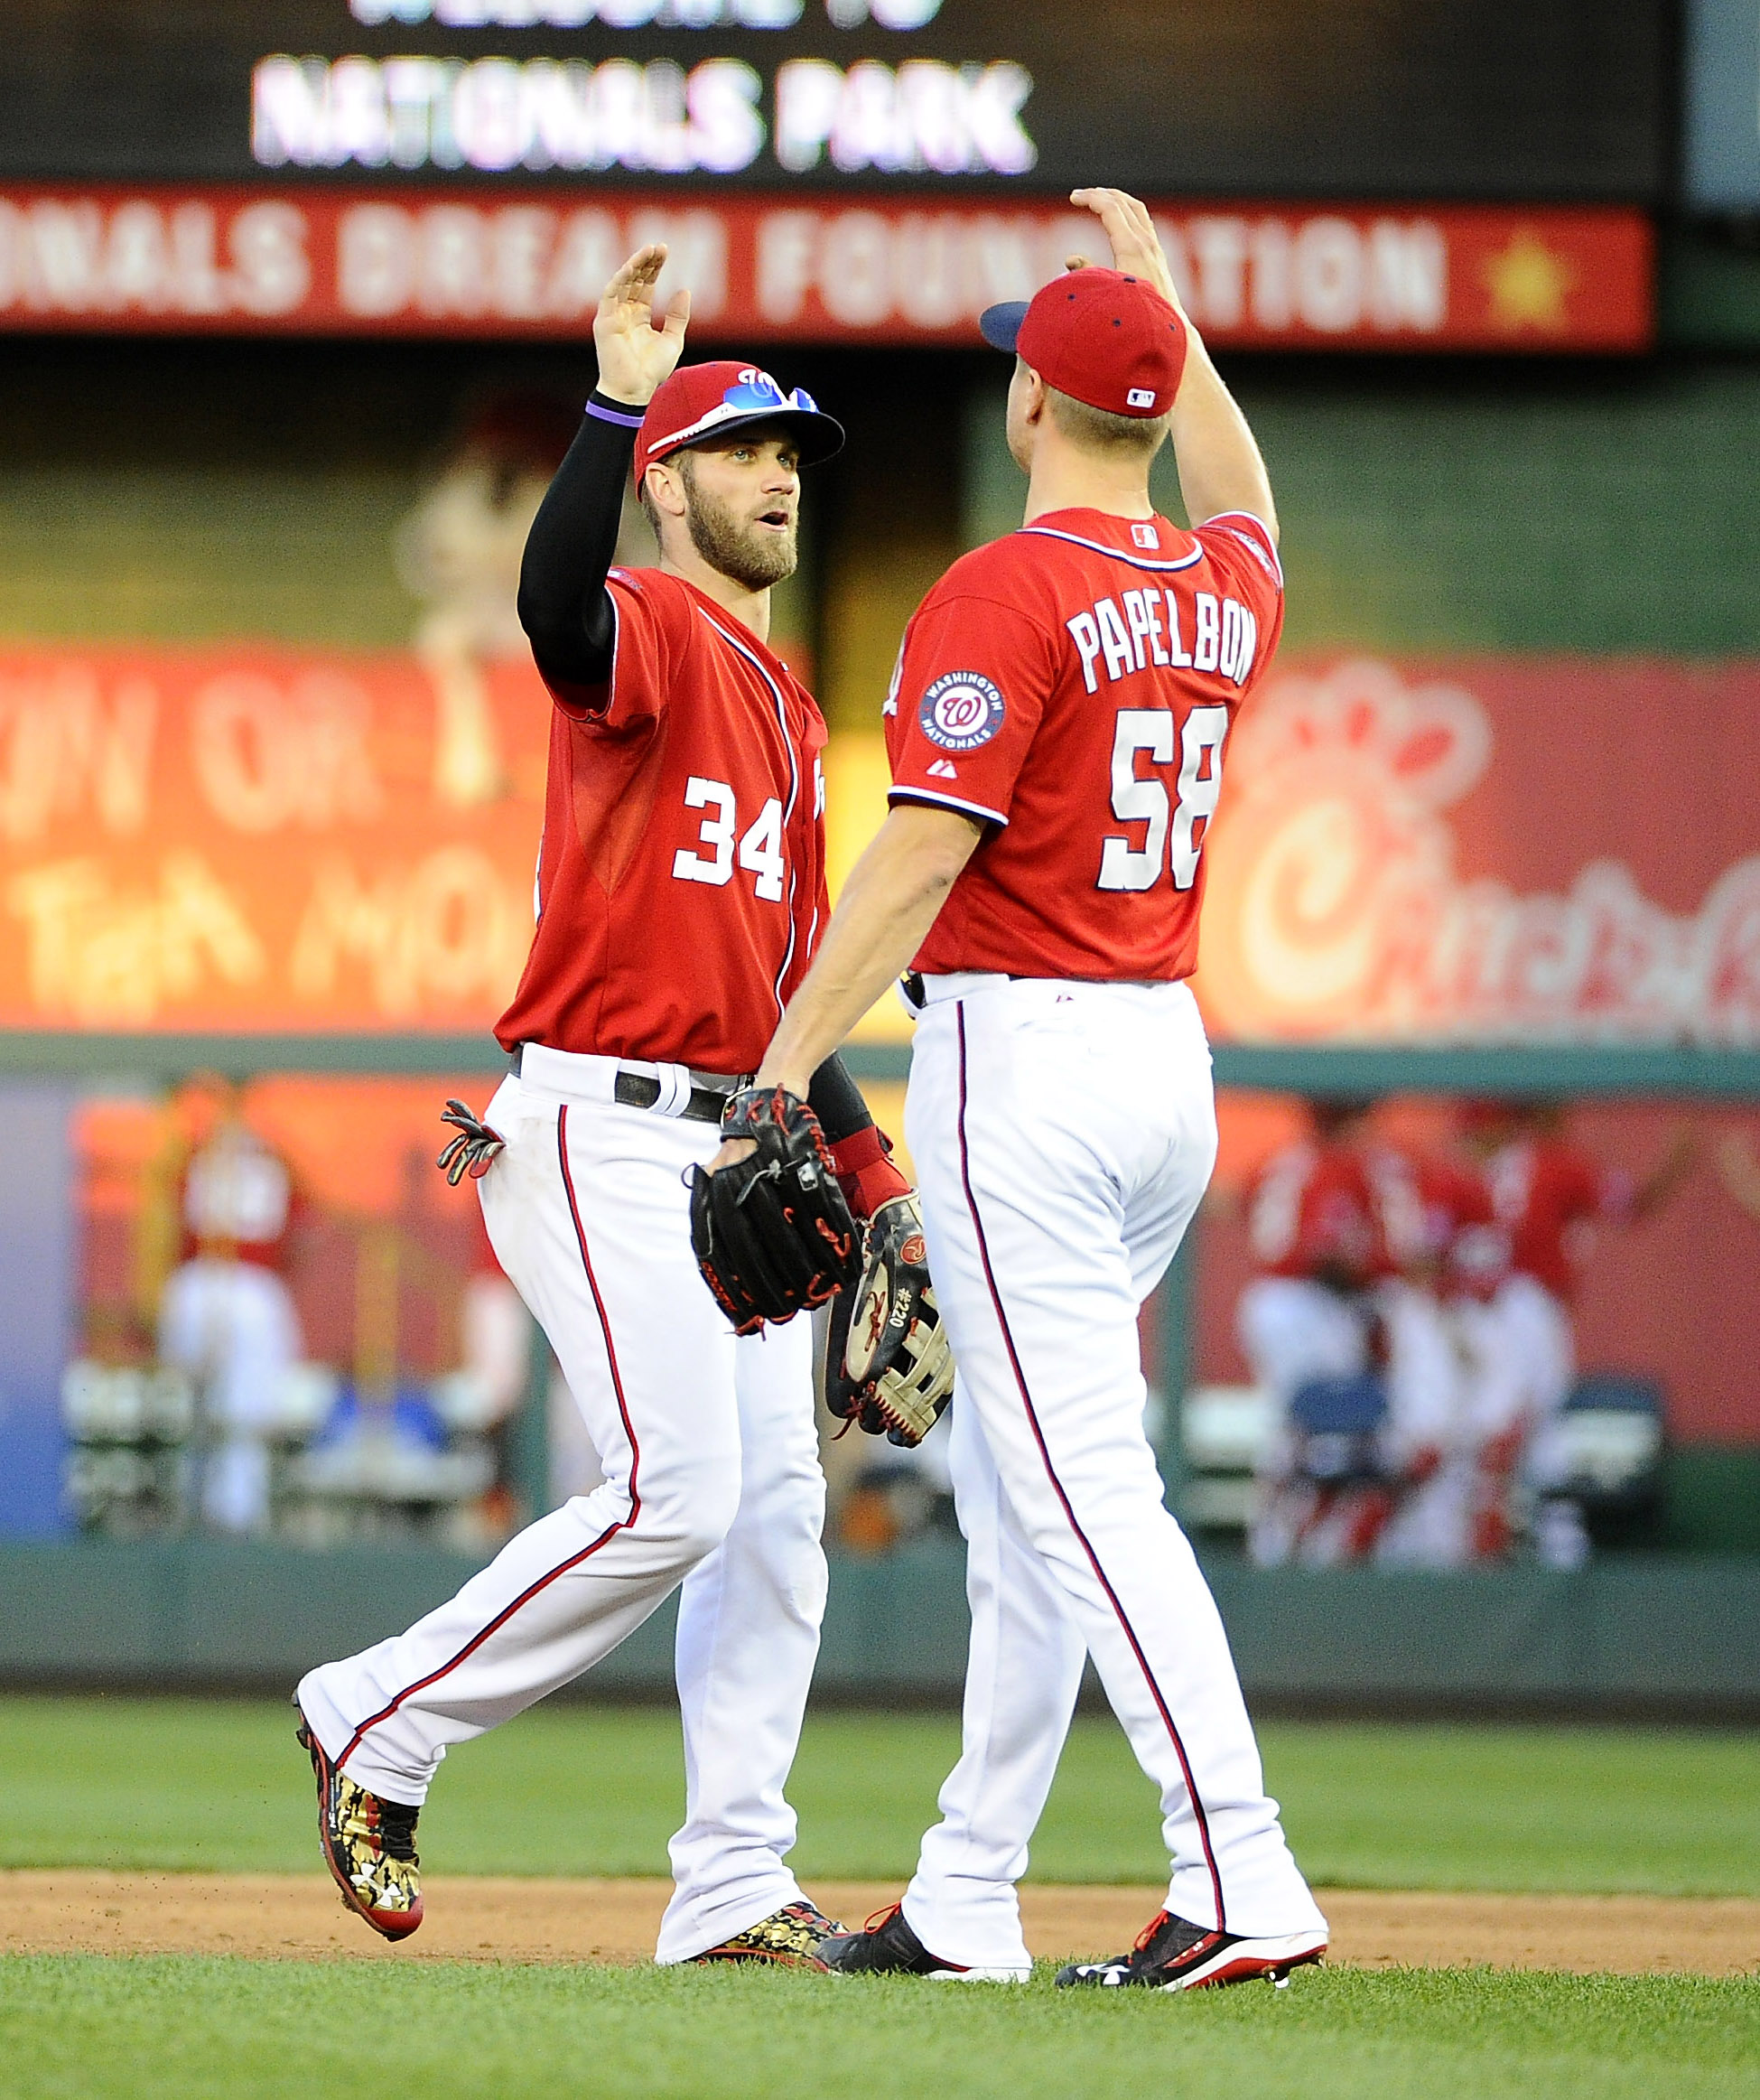 The Nats are firing on all cylinders right now, and have outscored their opponents by a ridiculous 117-69 margin so far in September. Can they keep on rolling?